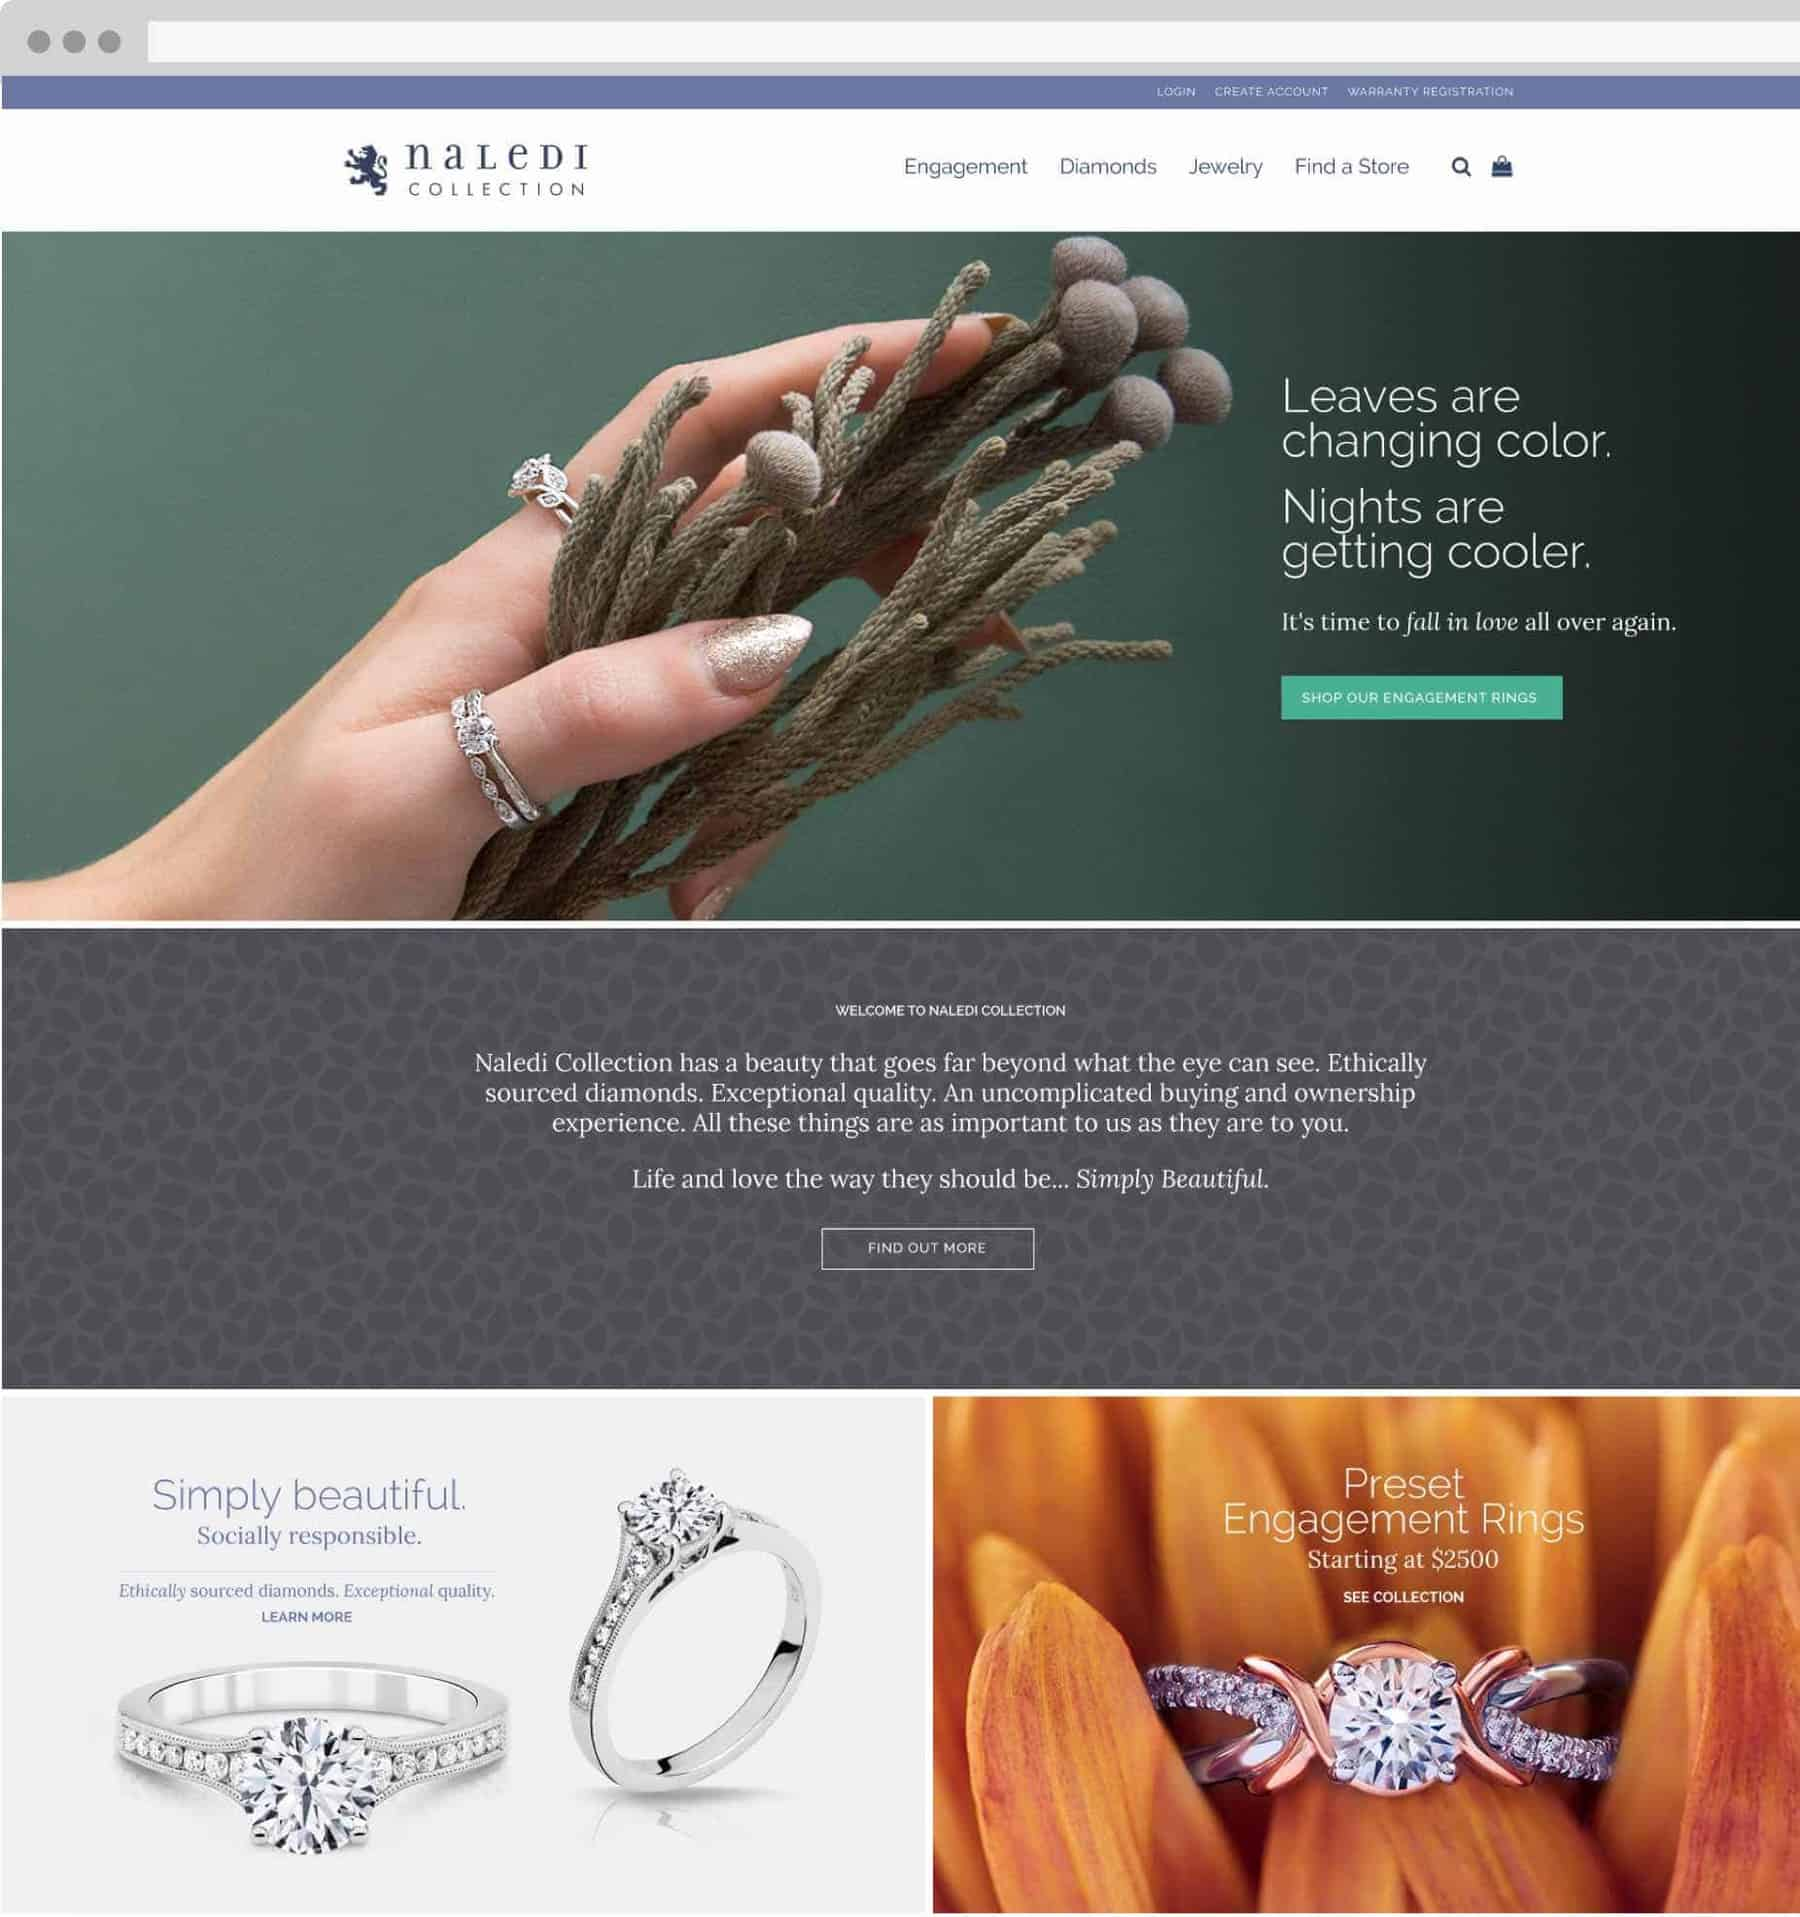 Naledi Collection page on desktop